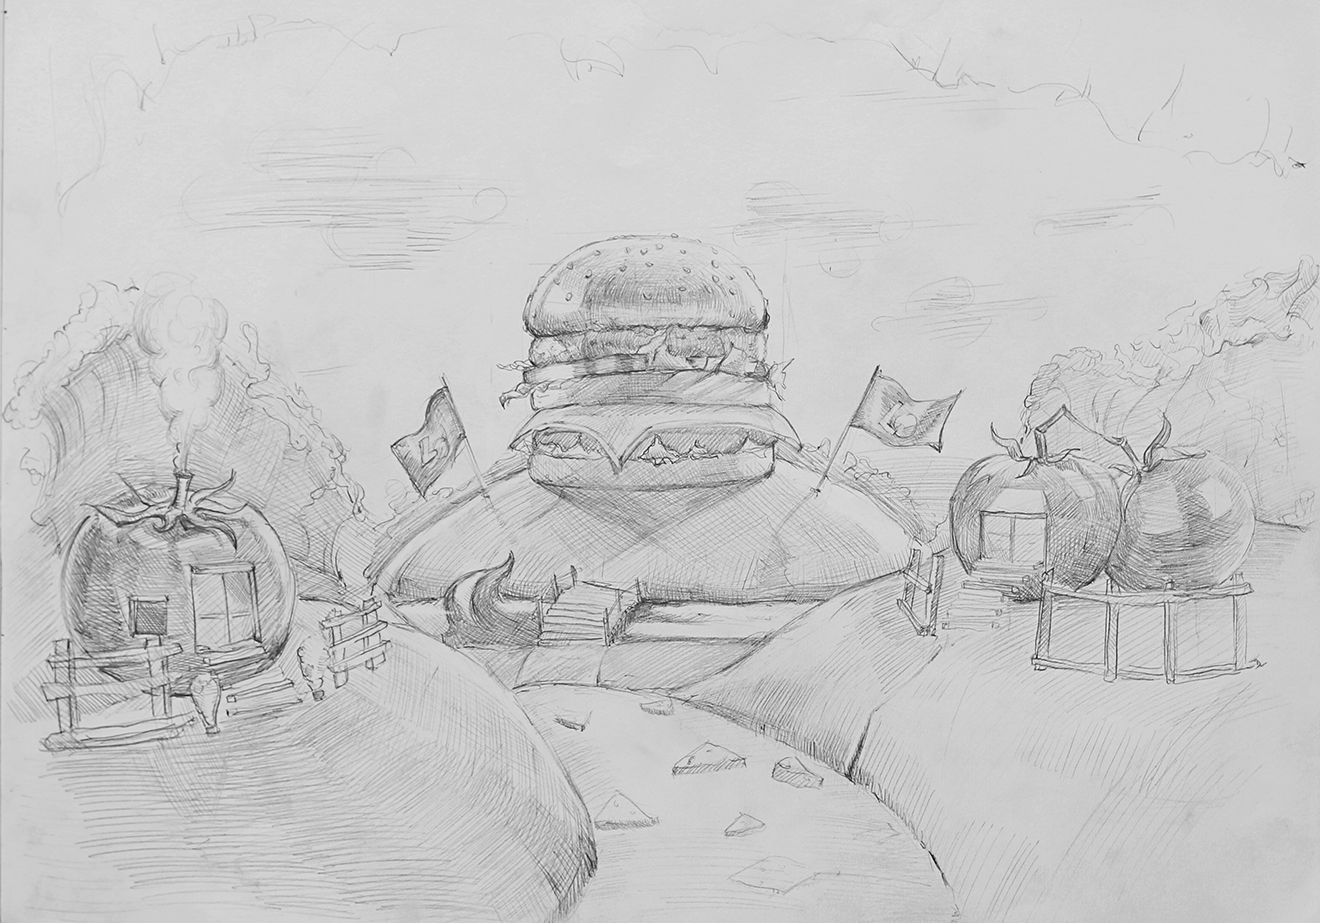 bratus agency-hamburger land-photo manipulation sketch-lotteria vietnam